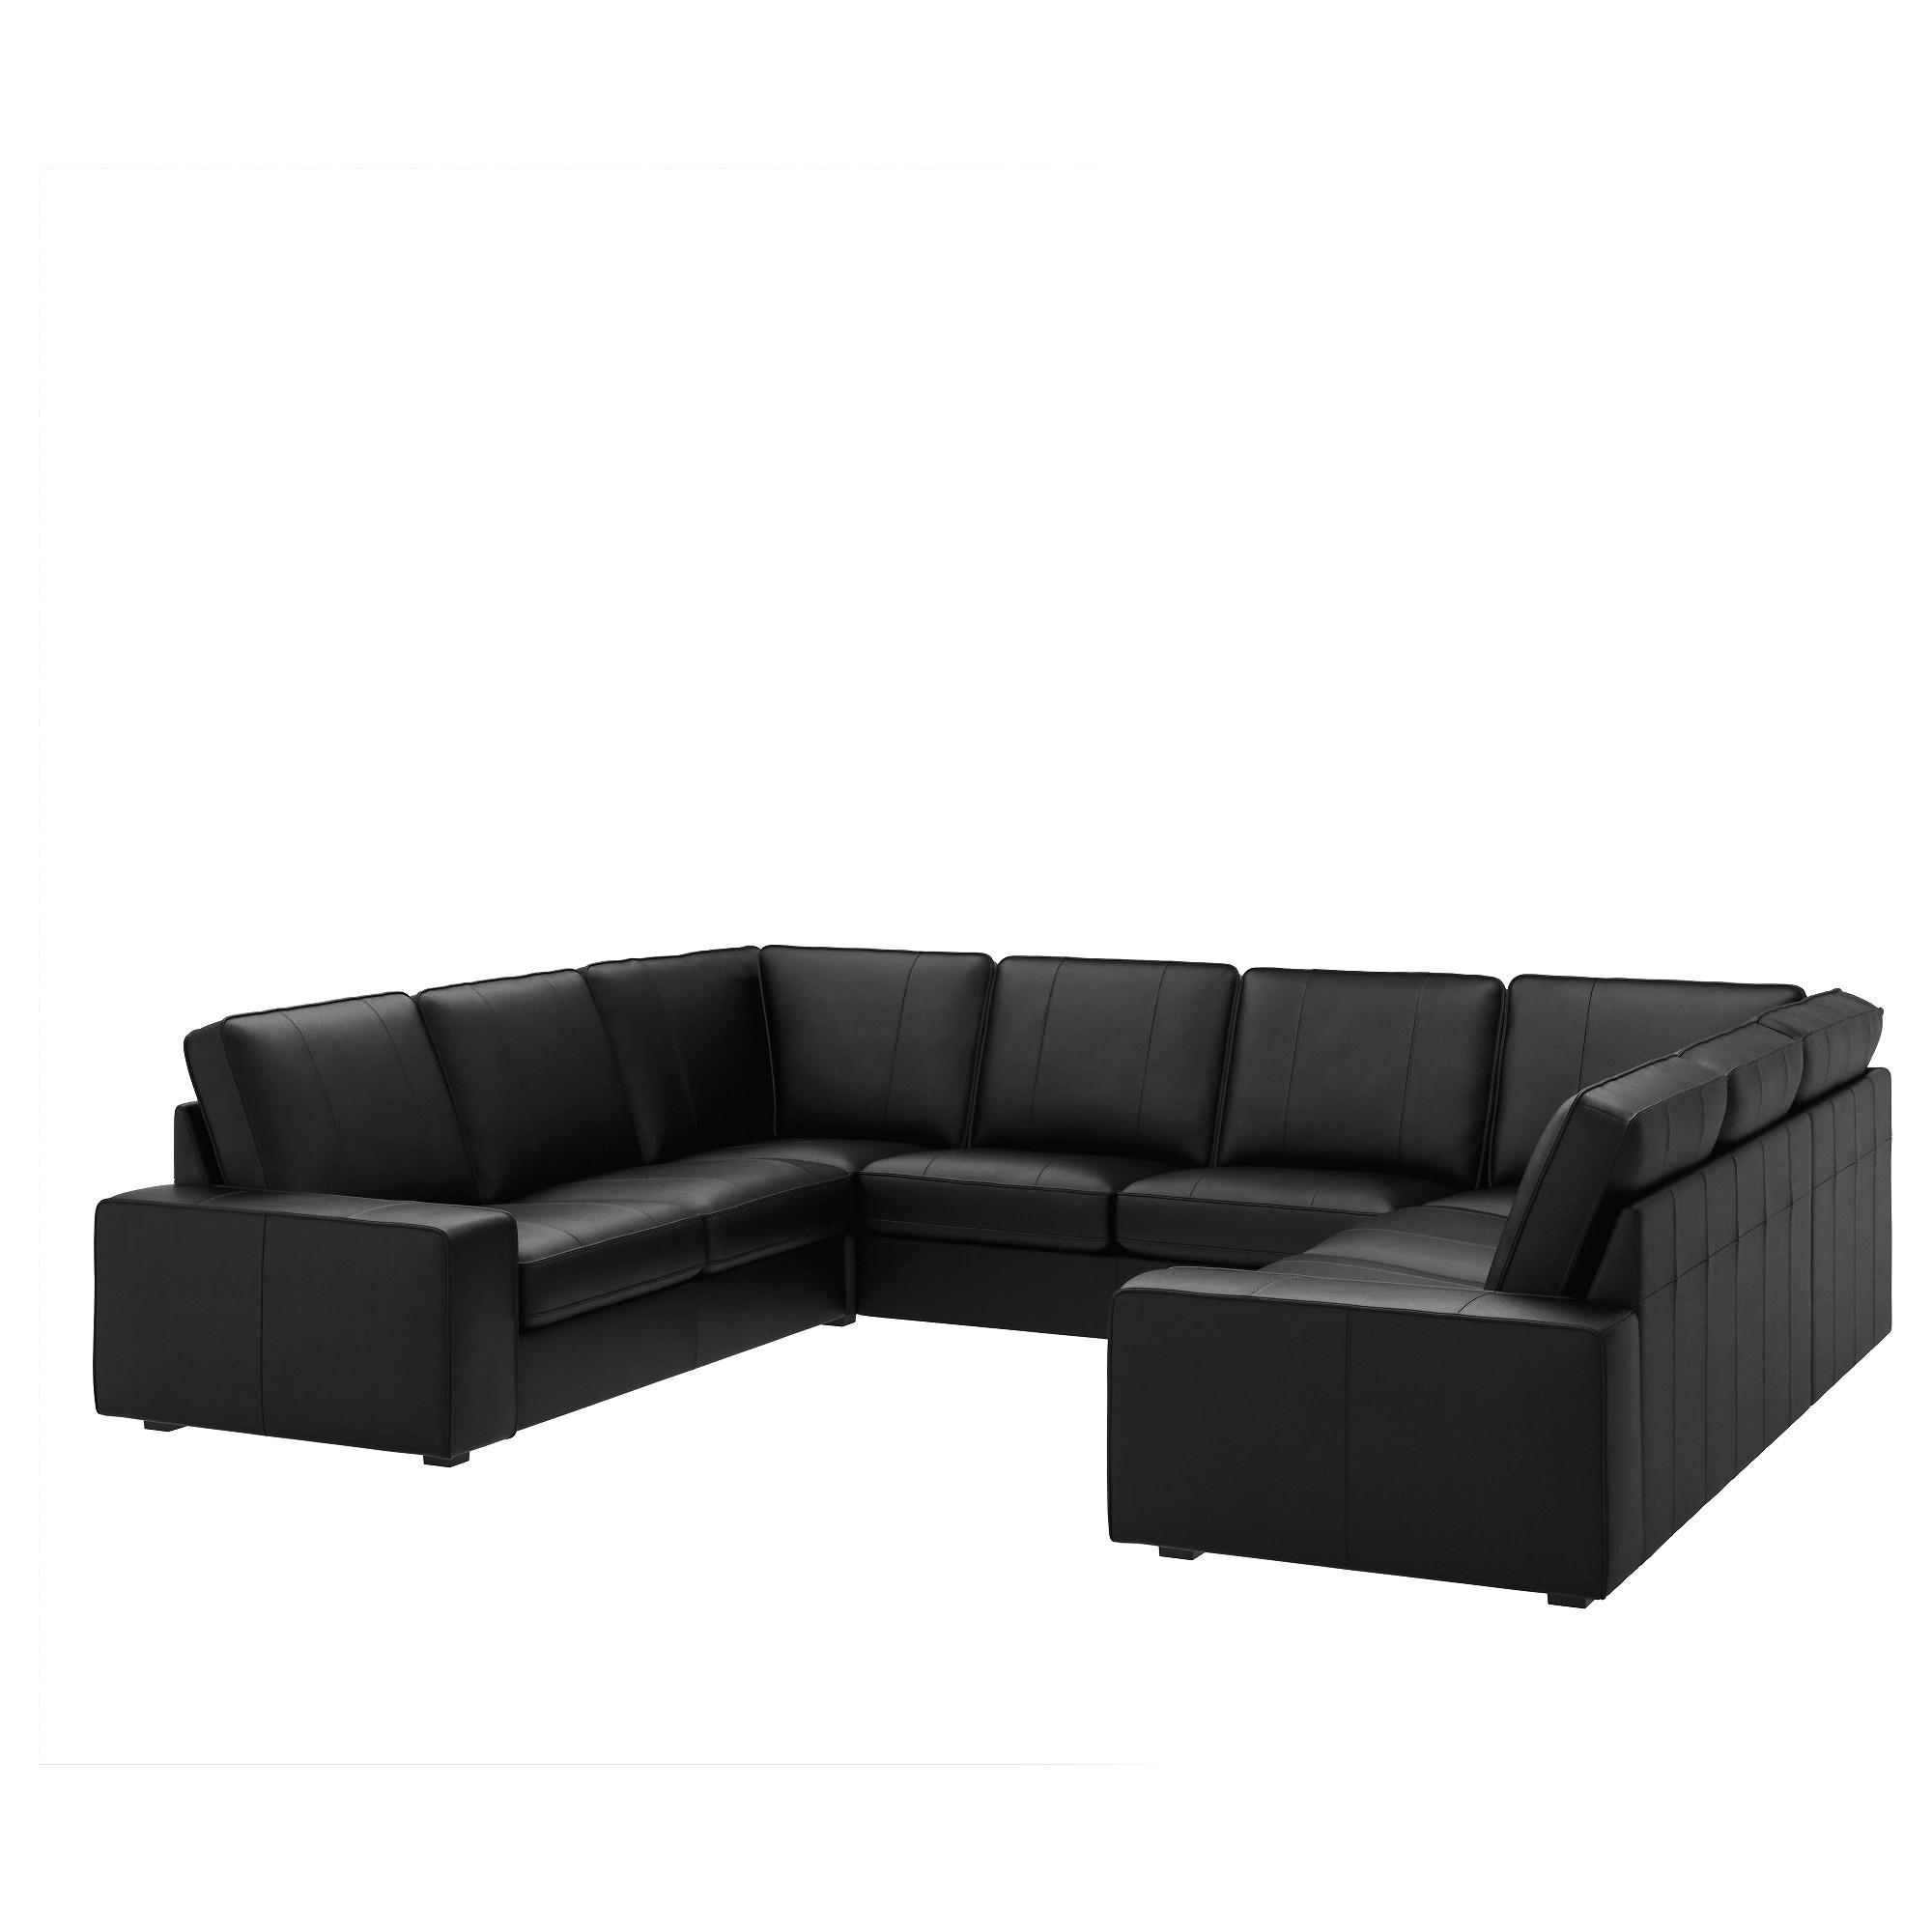 Kivik Sectional Kivik Sectional 6 Seat Grann Bomstad 6 Seat Dark Brown